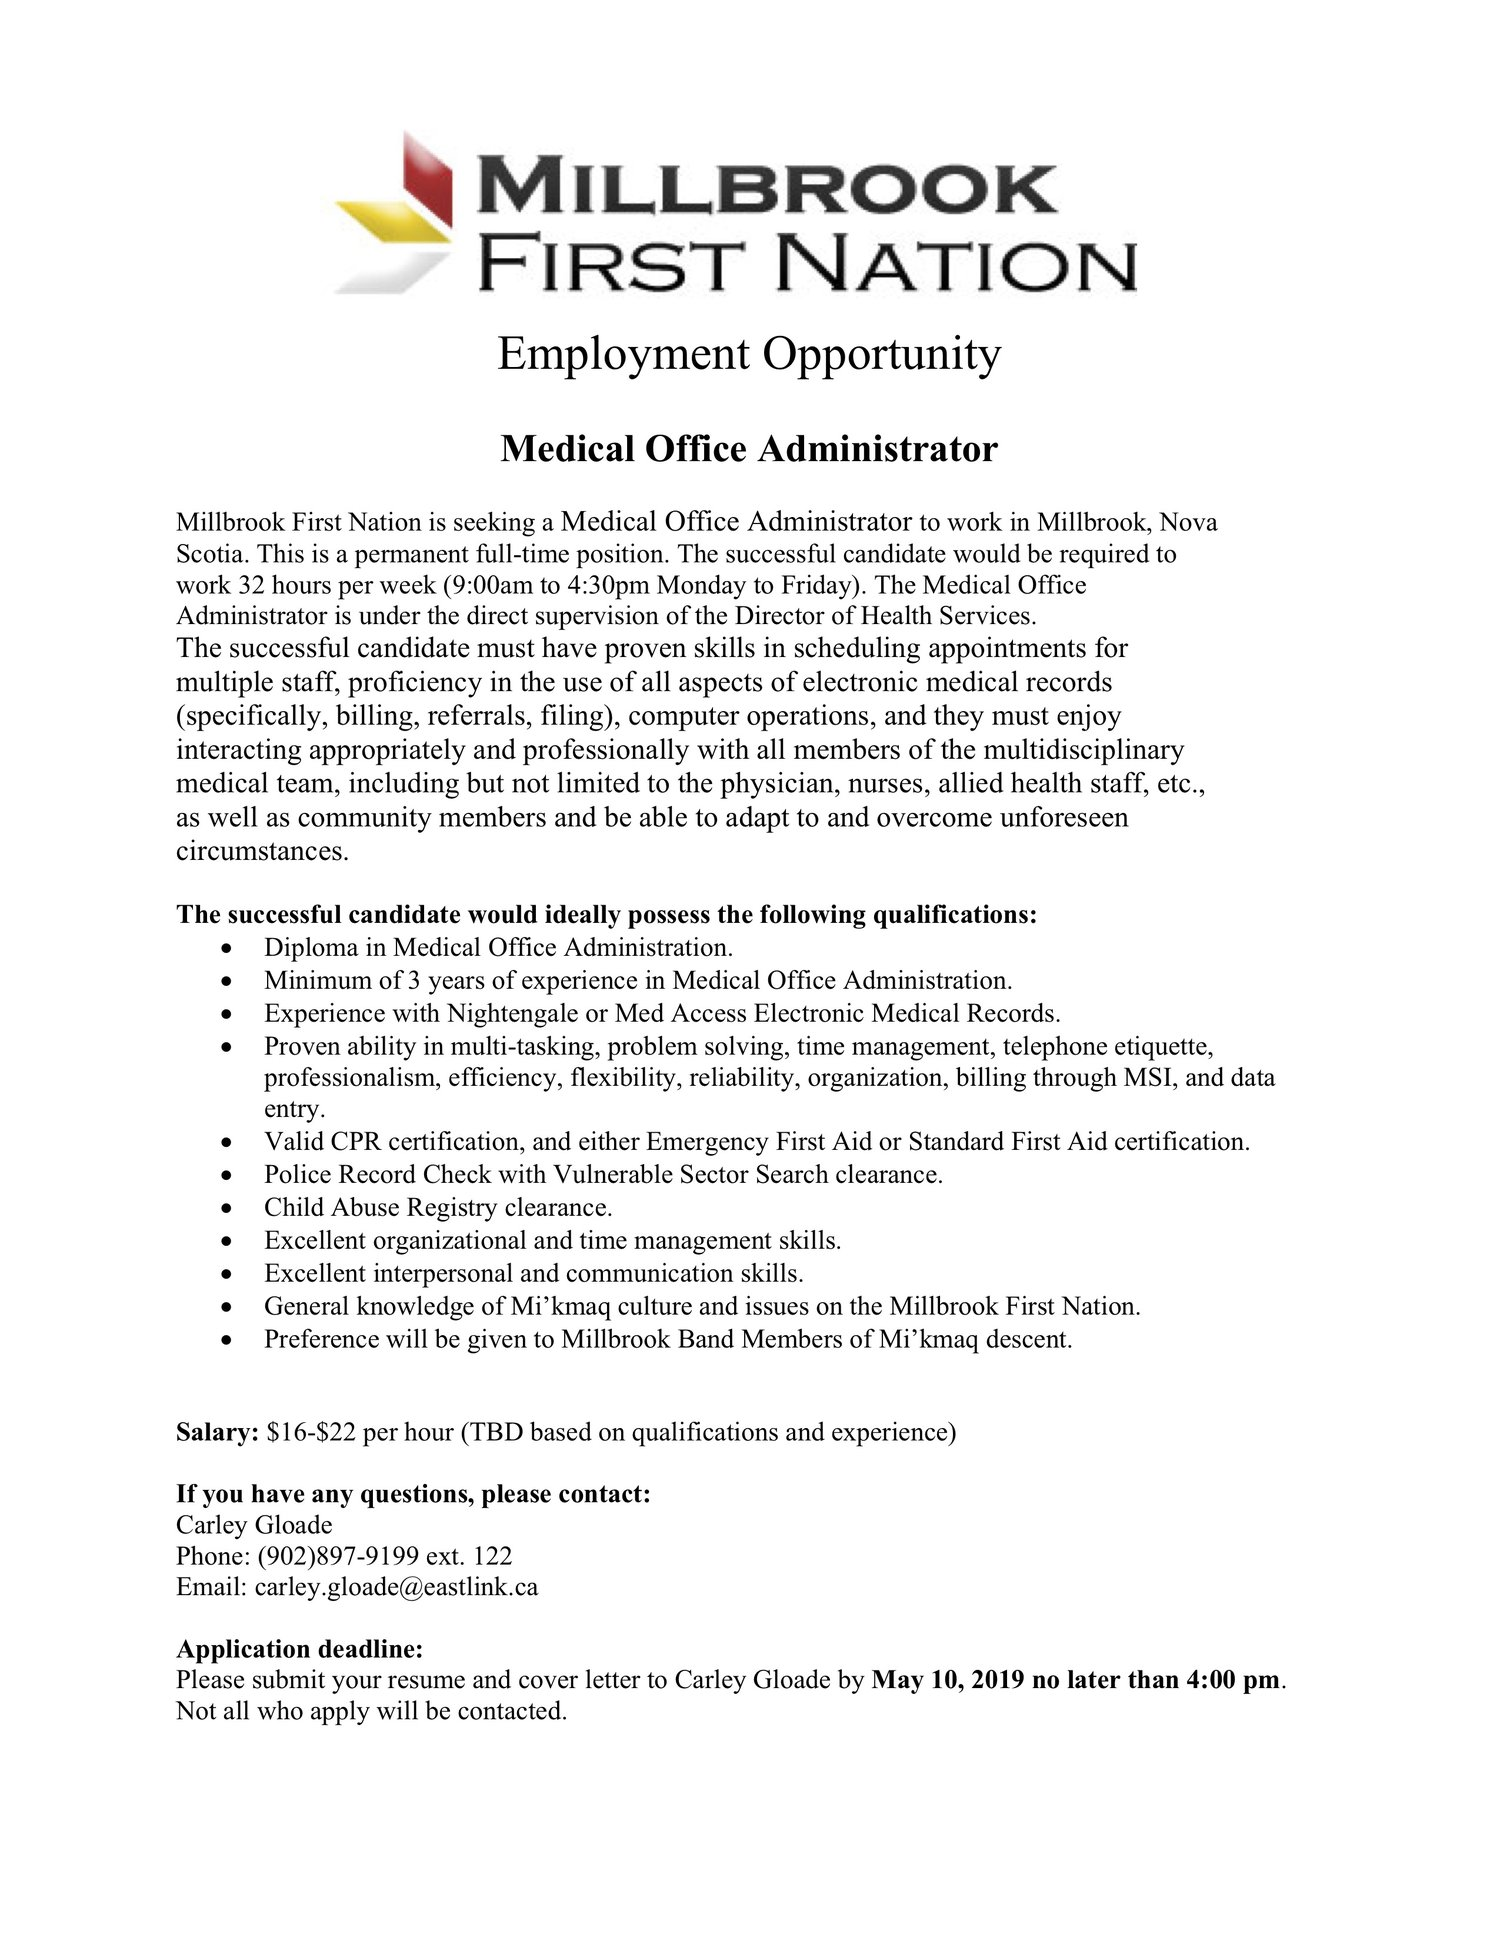 Employment Opportunity - Medical Office Administrator ...